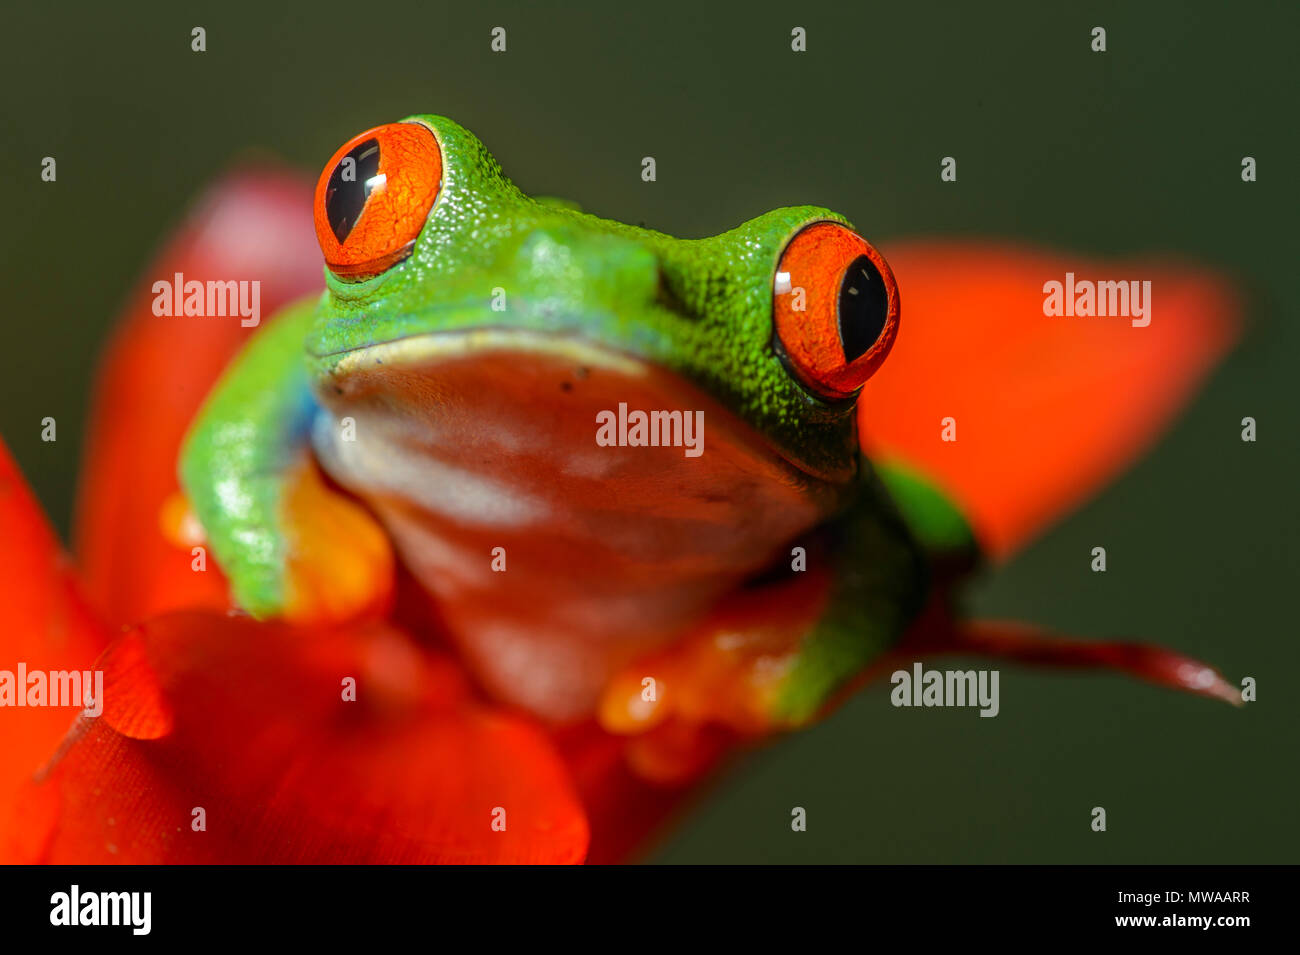 Red-eyed Tree Frog (Agalychnis callidryas), Captive, Reptilia reptile zoo, Vaughan, Ontario, Canada - Stock Image